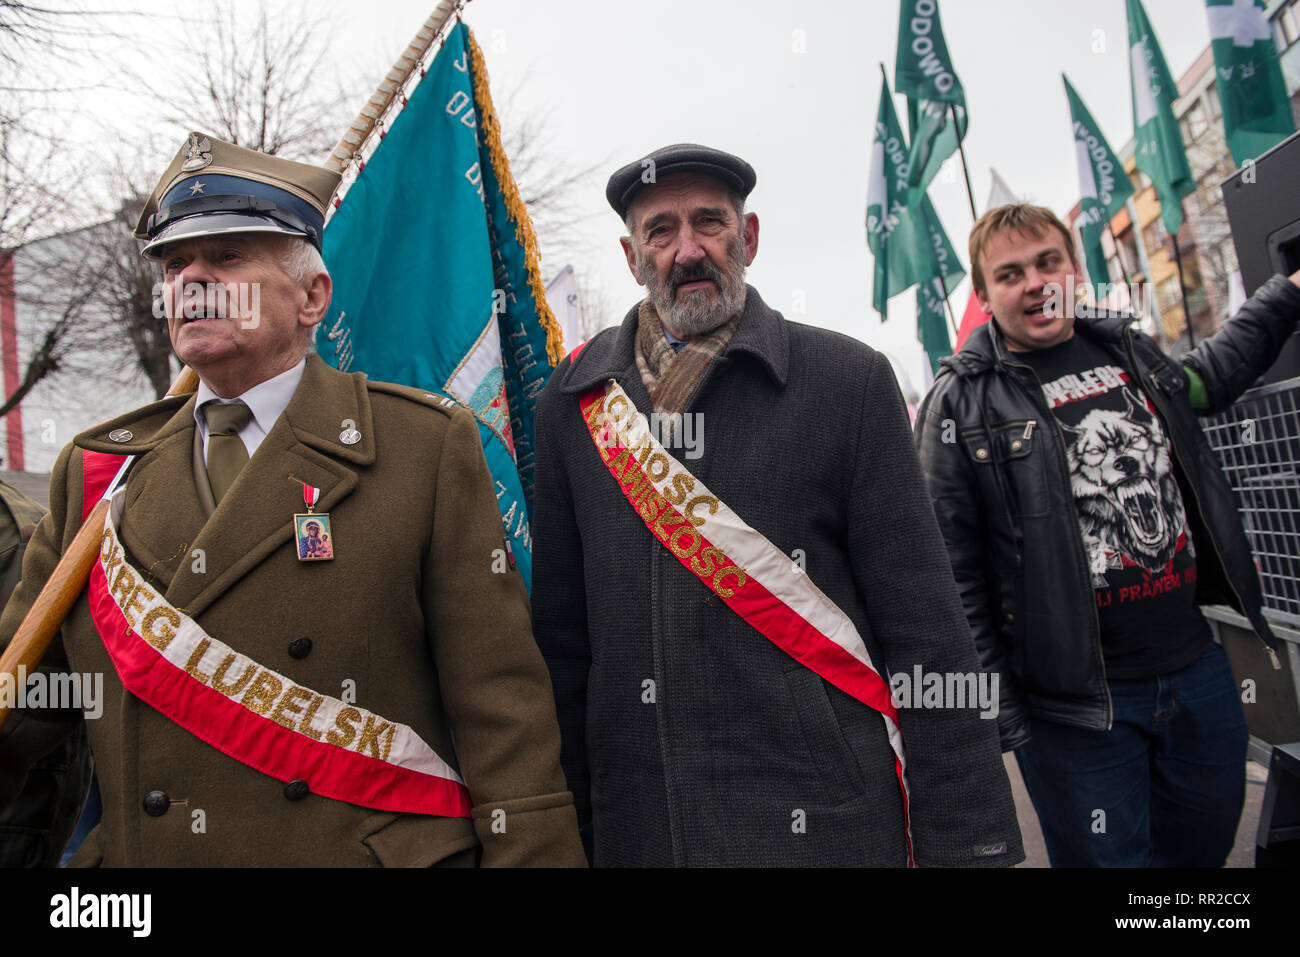 """Nationalists marching to commemorate the Cursed Soldiers. Polish nationalists organized a commemorative march of the """"Cursed Soldiers"""" in the city of Hajnowka next to the Belarusian border. The Cursed Soldiers also known as the Doomed Soldiers were anti-communist resistant fighters after WWII, however they were also famous of committing crimes against civilians, mostly ethnic Belarusians. - Stock Image"""